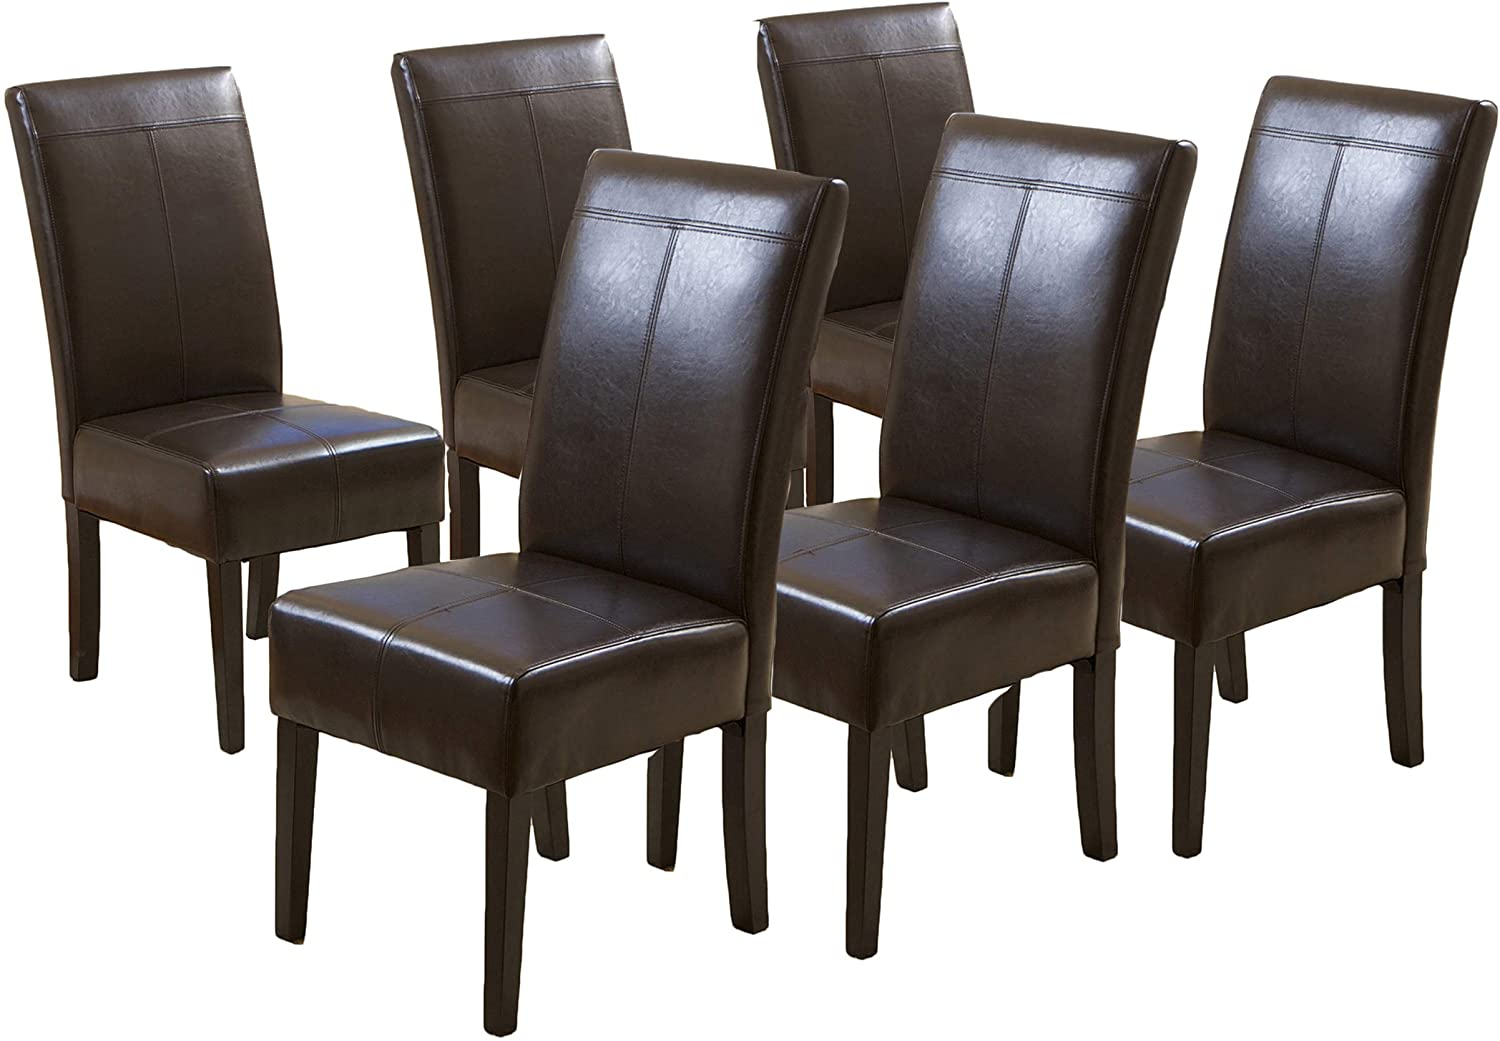 Christopher Knight online shopping Home Nashville-Davidson Mall Pertica Dining T-Stitch Chairs Leather